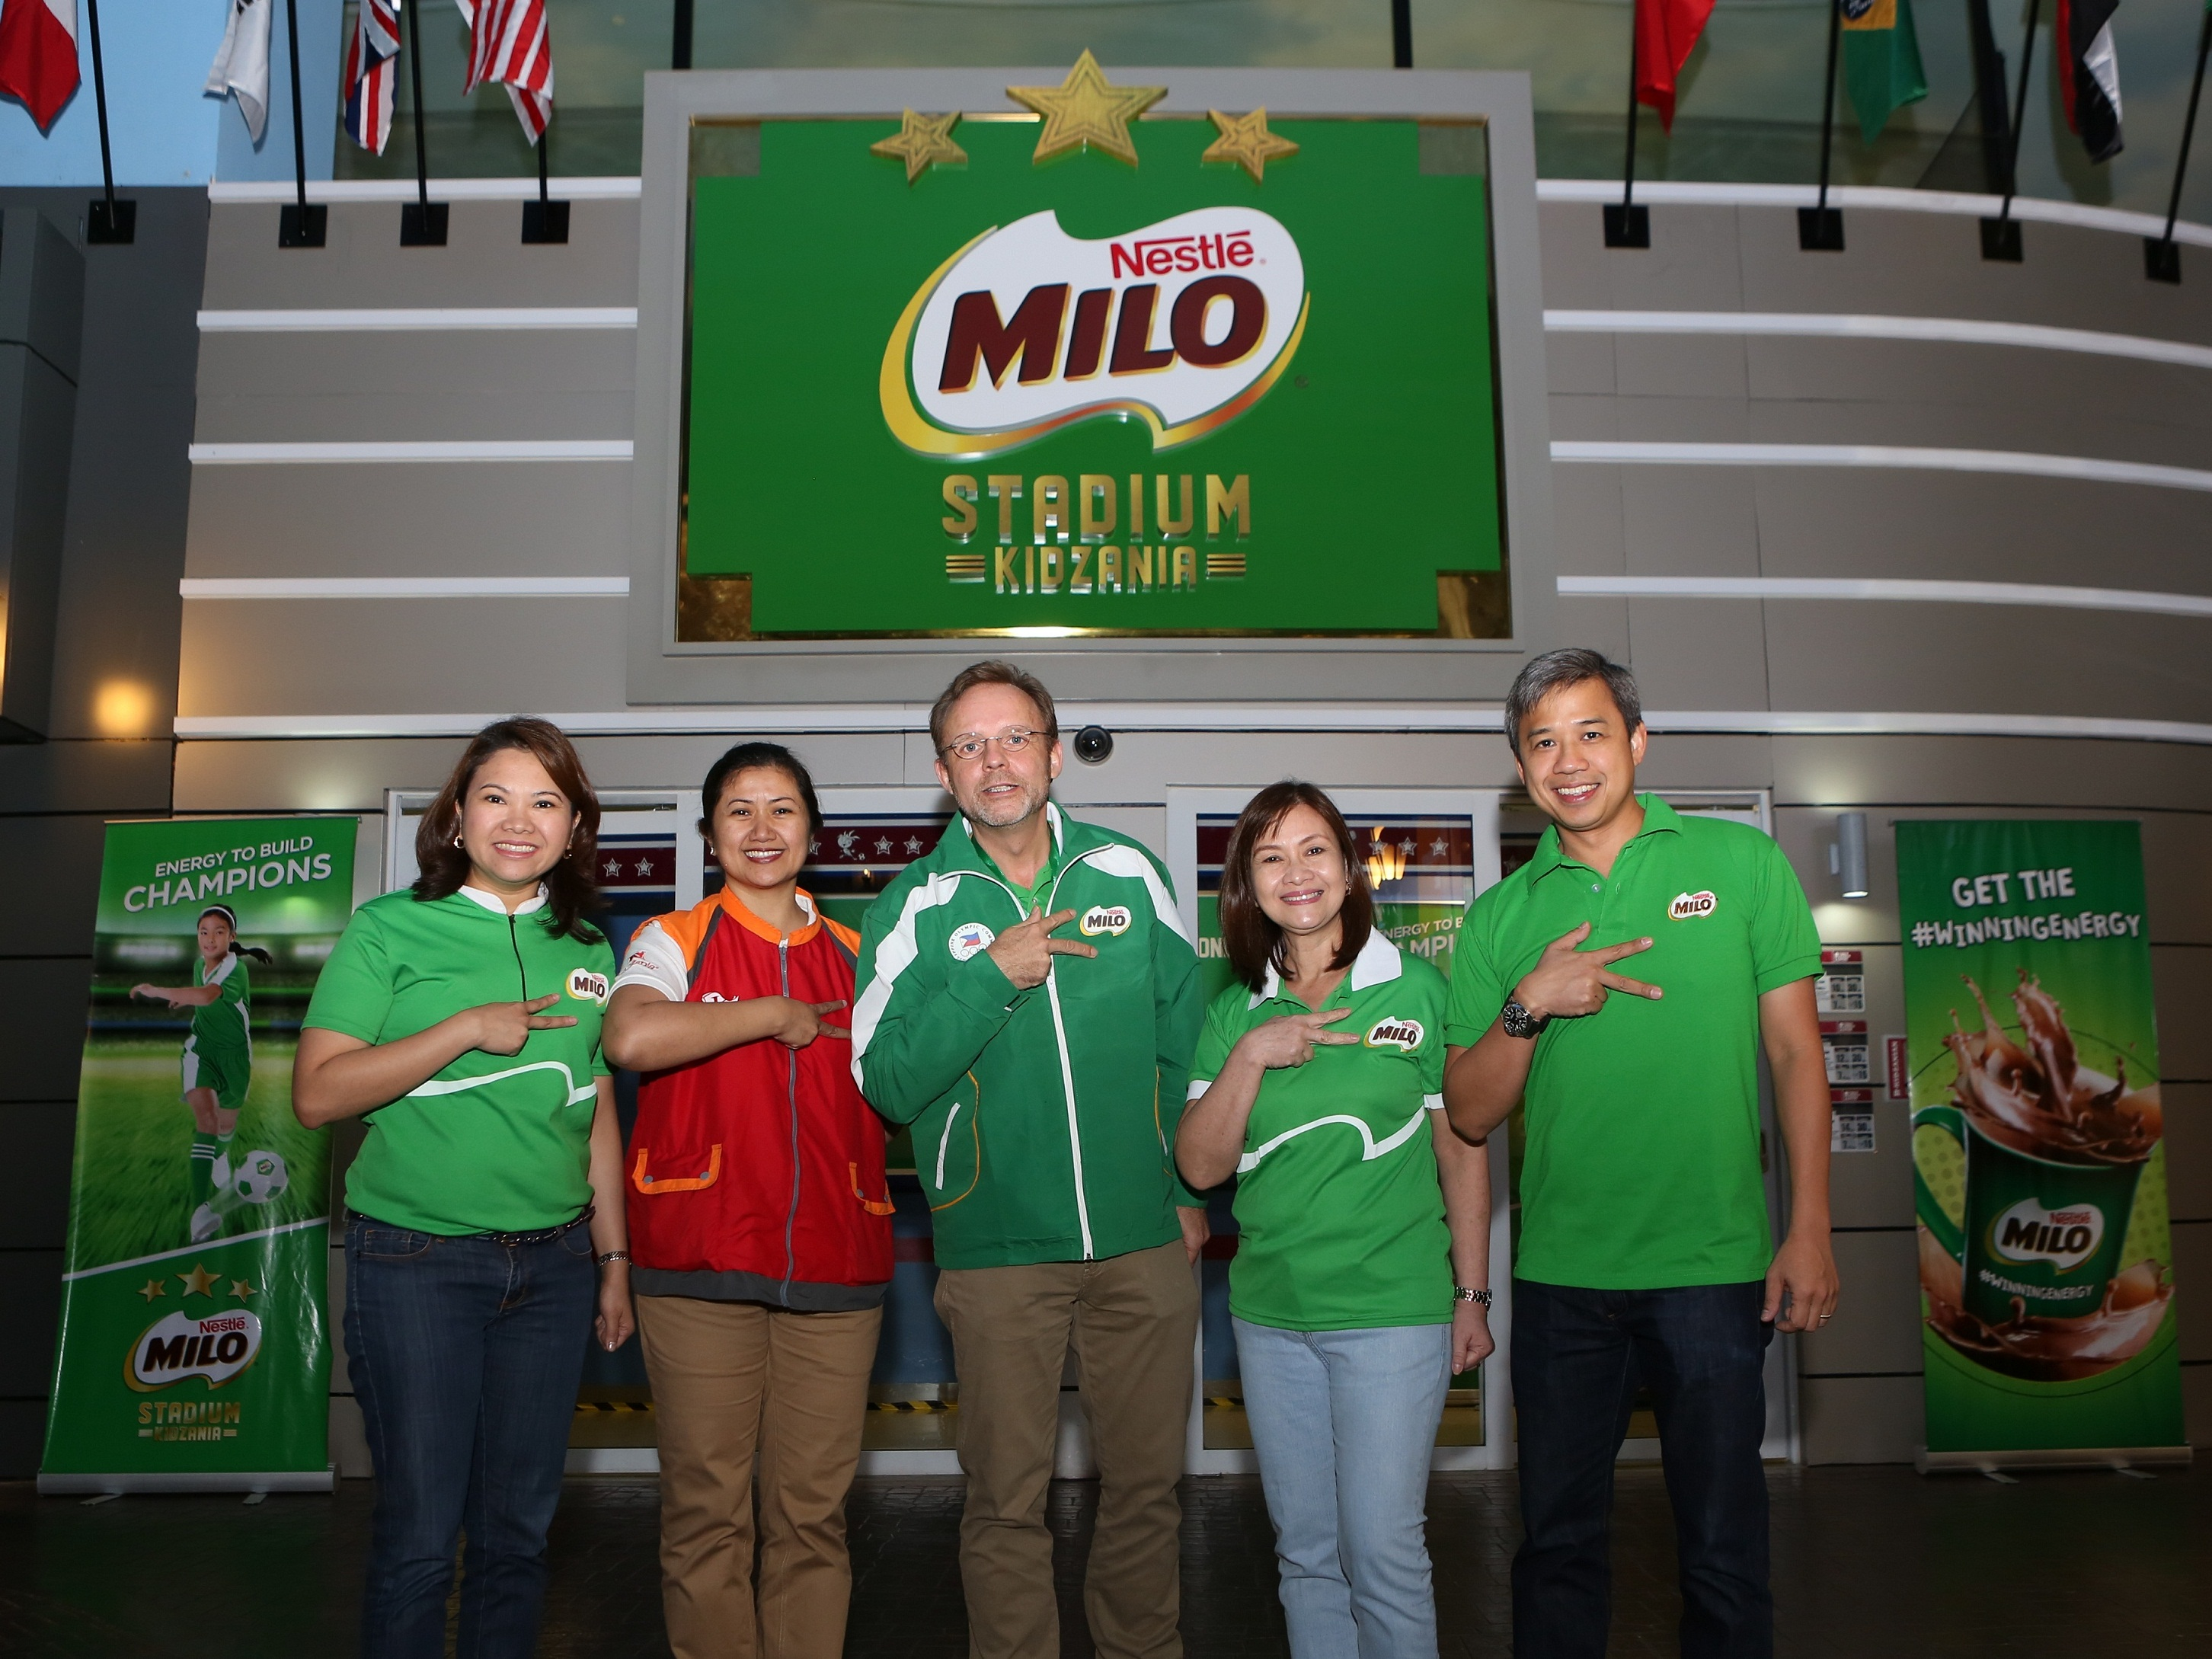 (from L-R): Ellen Isturis (Team Lead, MILO Philippines), CecilleMariño (Minister of Industry, KidZania Manila), Jacques Reber (Chairman and CEO, Nestlé Philippines Inc.), Aurora Alipao (Head of Corporate Communications & Consumer Services, Nestlé Philippines Inc.) and Joey Uy (Business Executive Manager, Liquid Beverages, Nestlé Philippines Inc.) formally open the doors to the MILO Stadium.